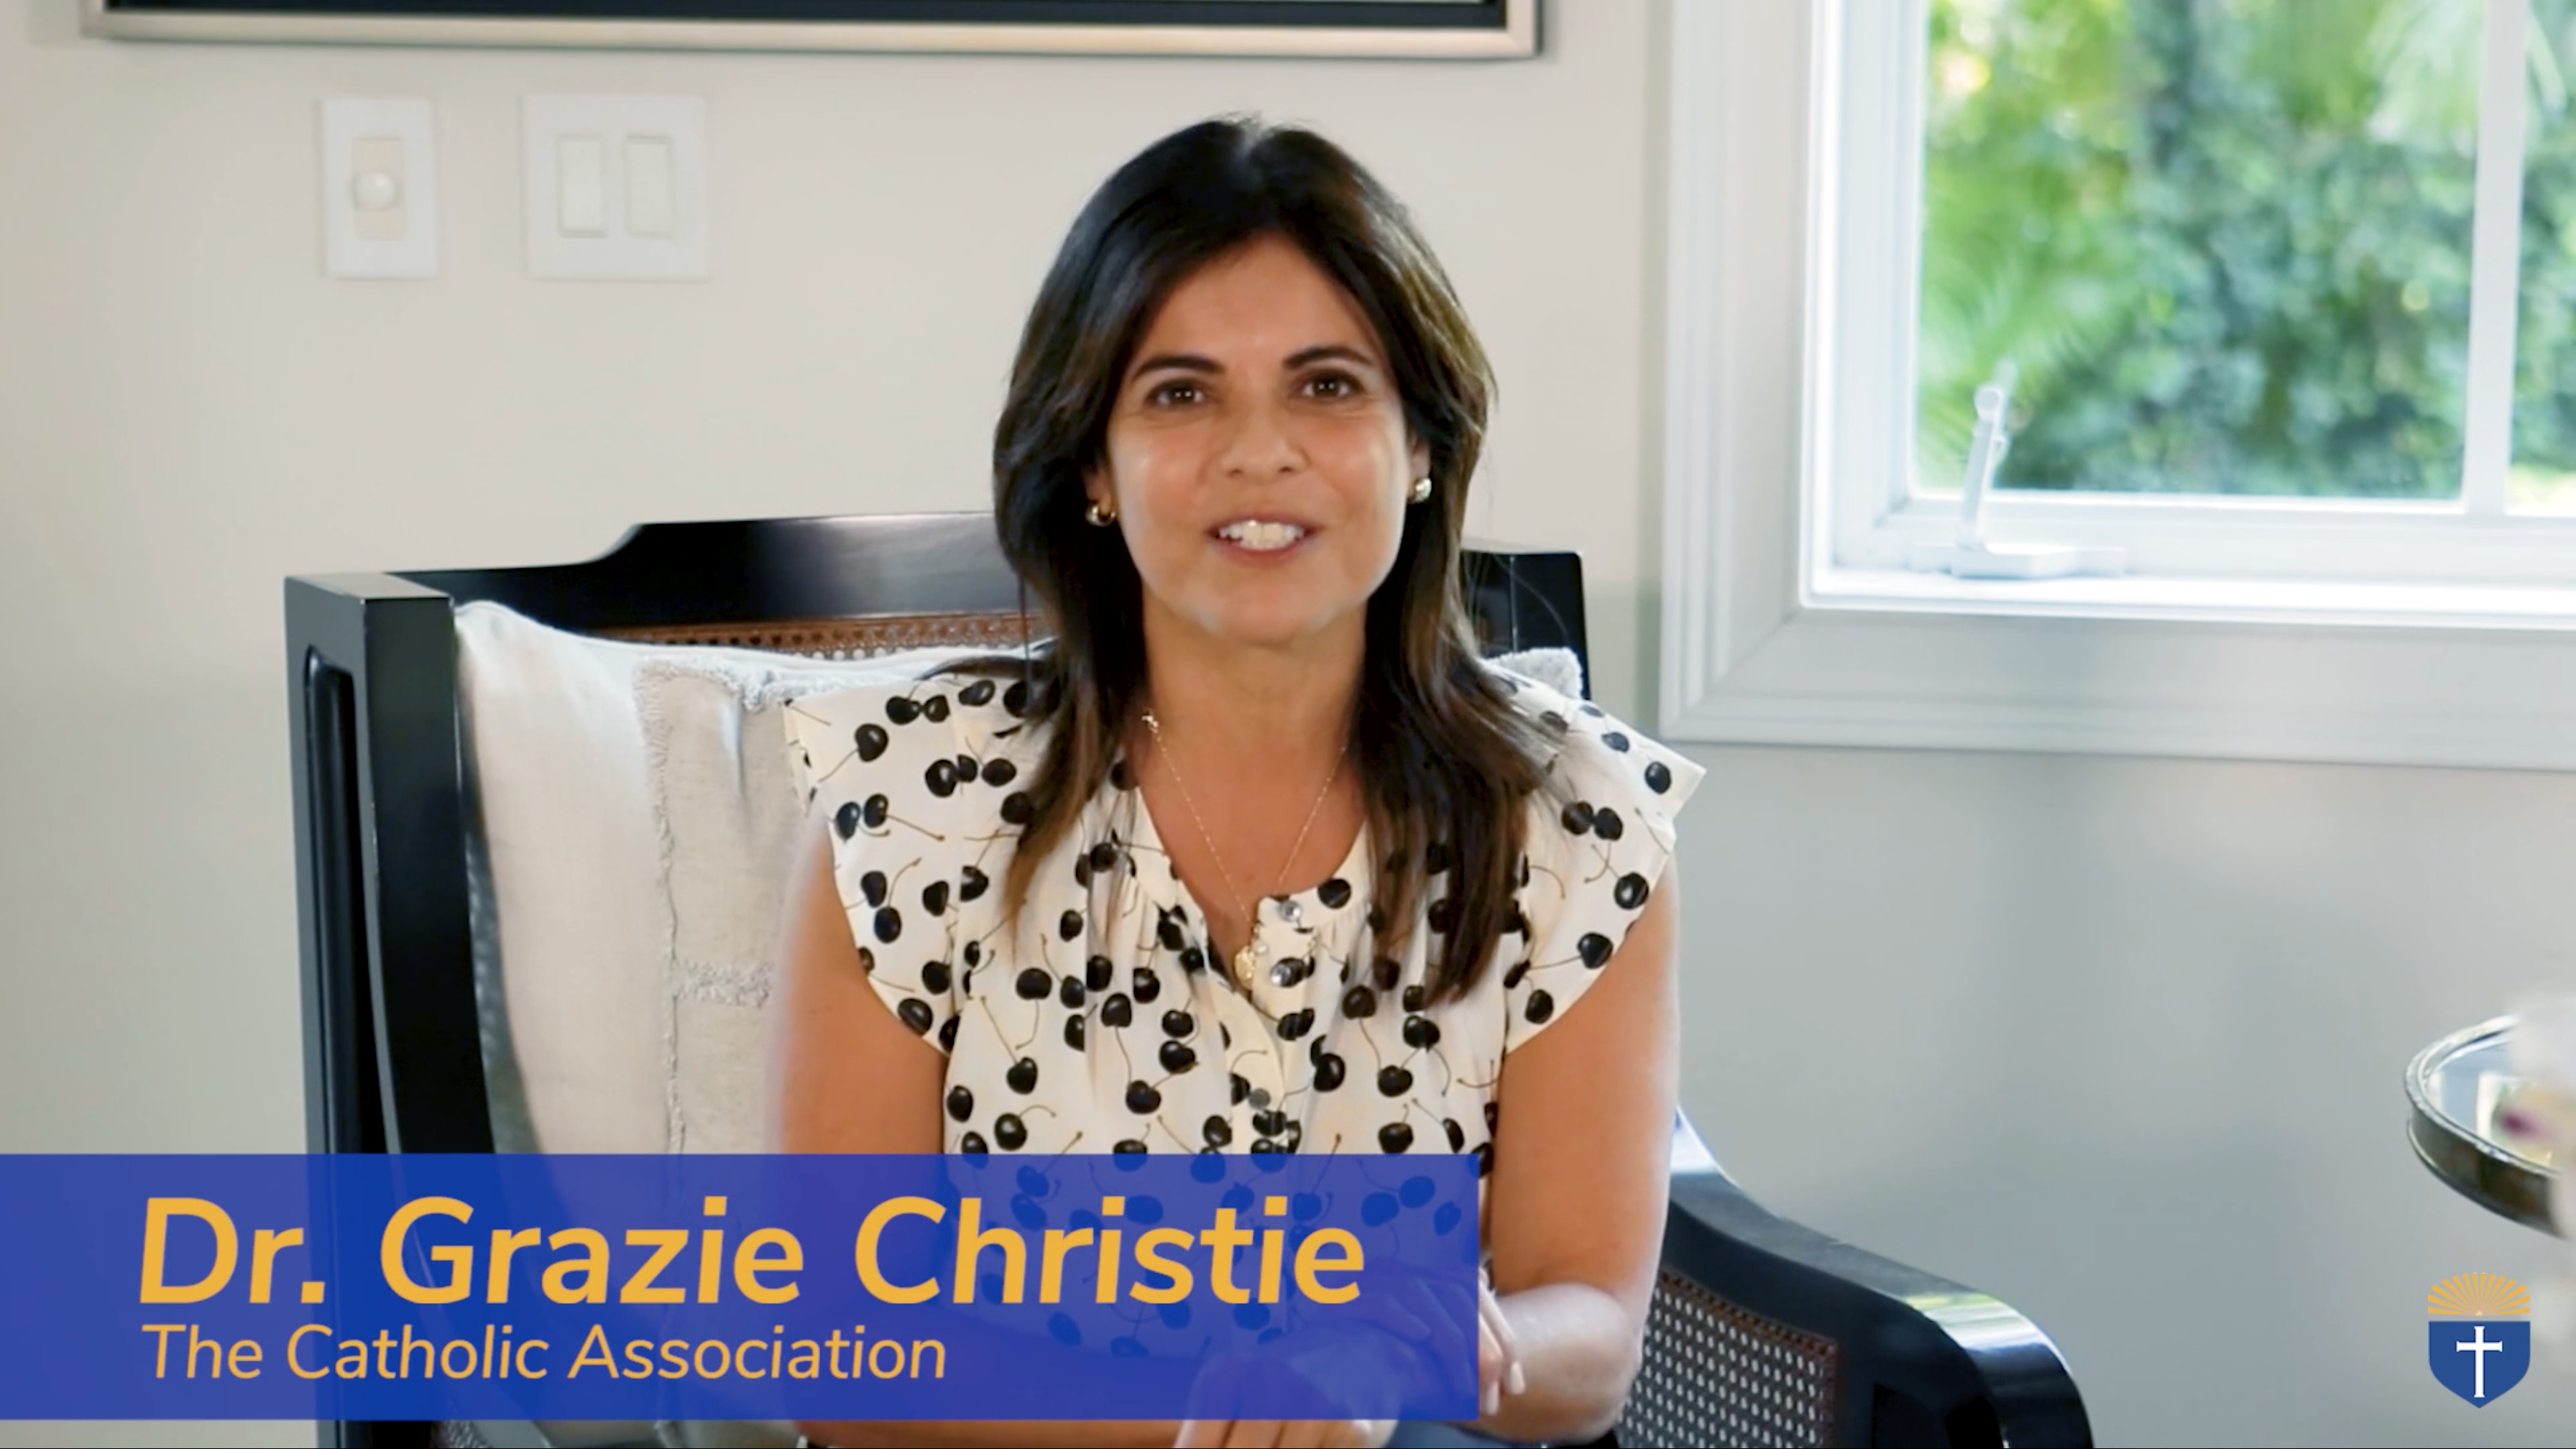 Dr. Grazie Christie of The Catholic Association participates in an online classroom discussion on pro-life issues.